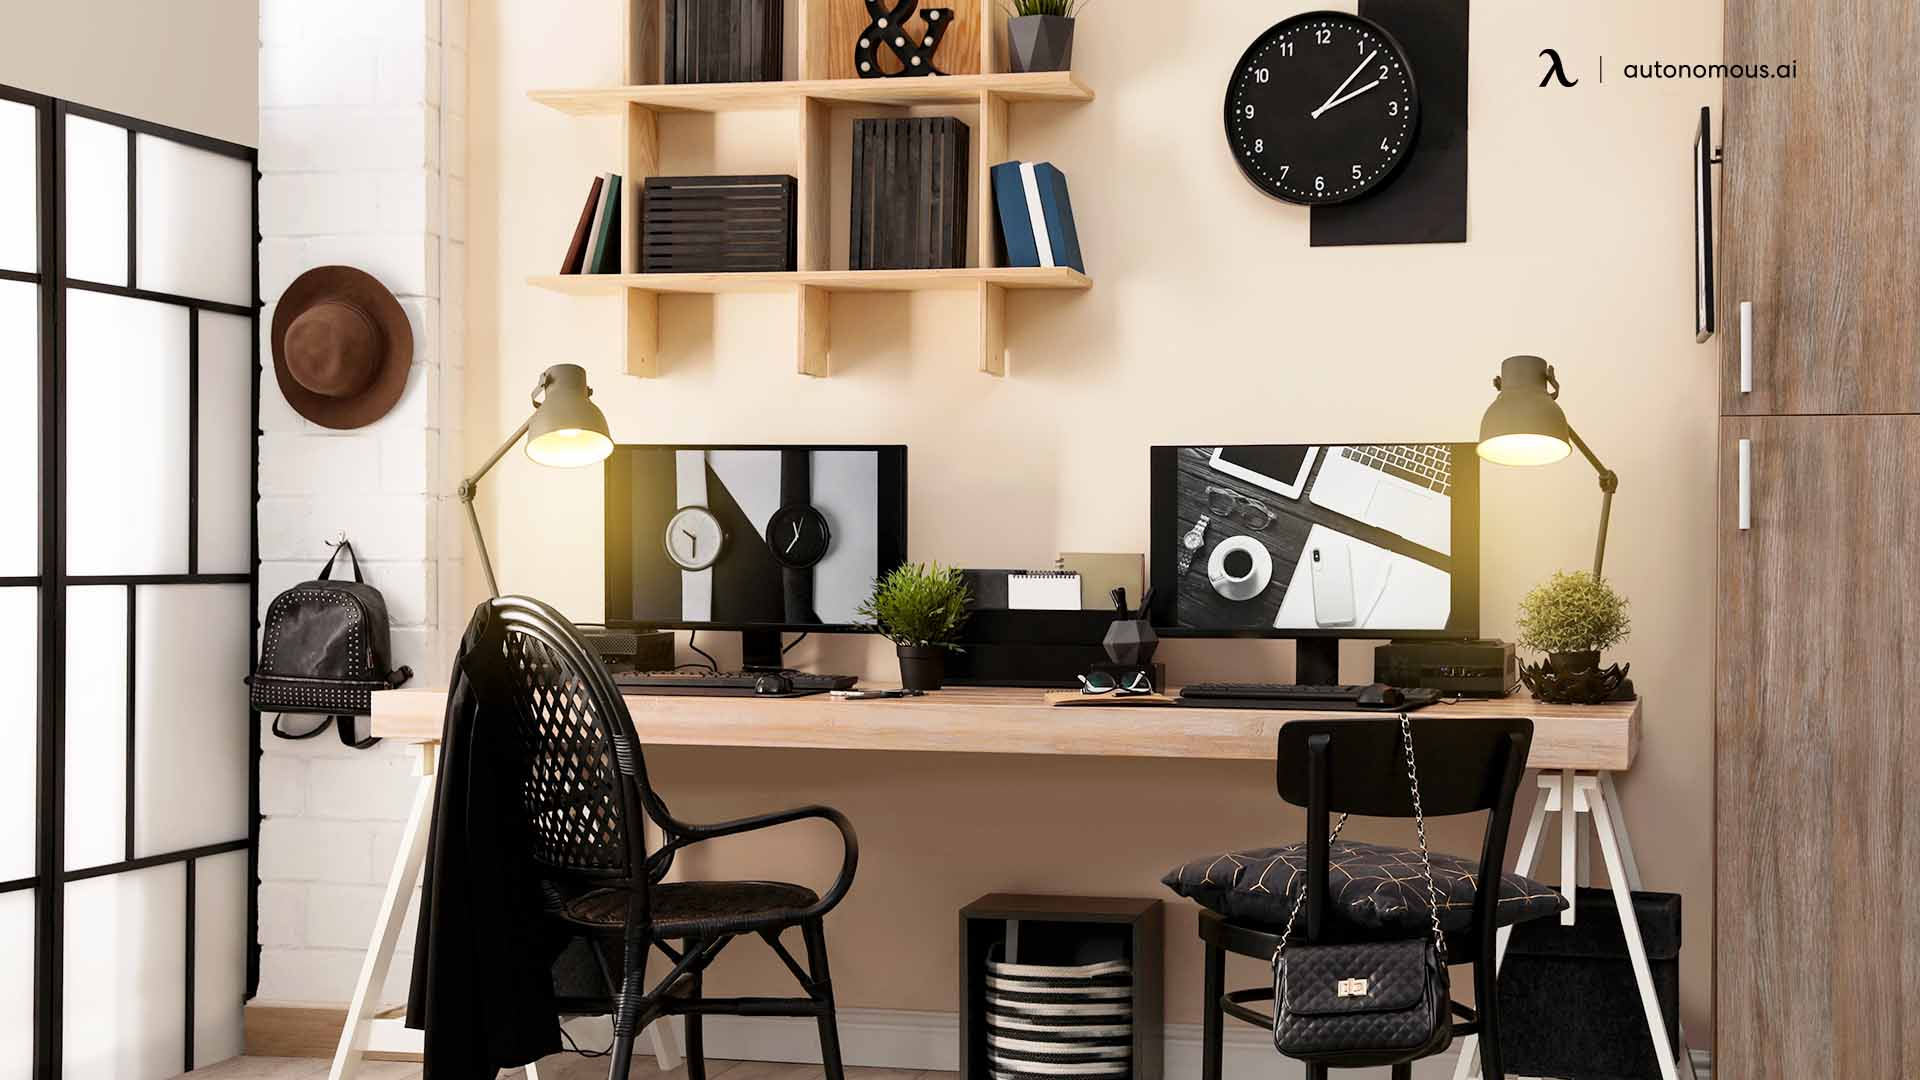 Setting up shared home office the easy way